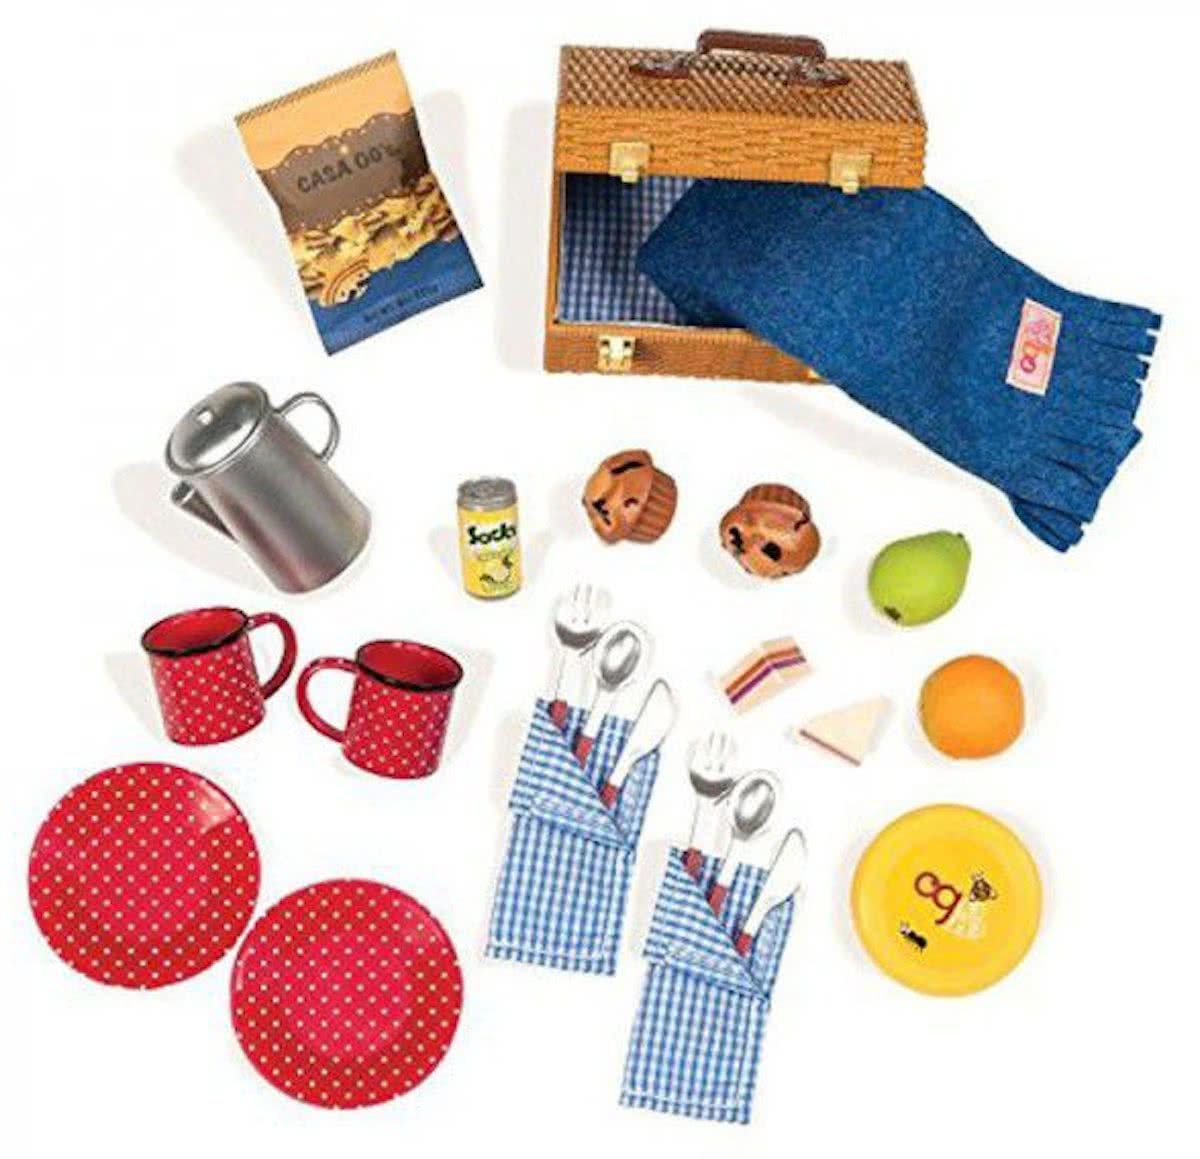 Our Generation Picknick Set